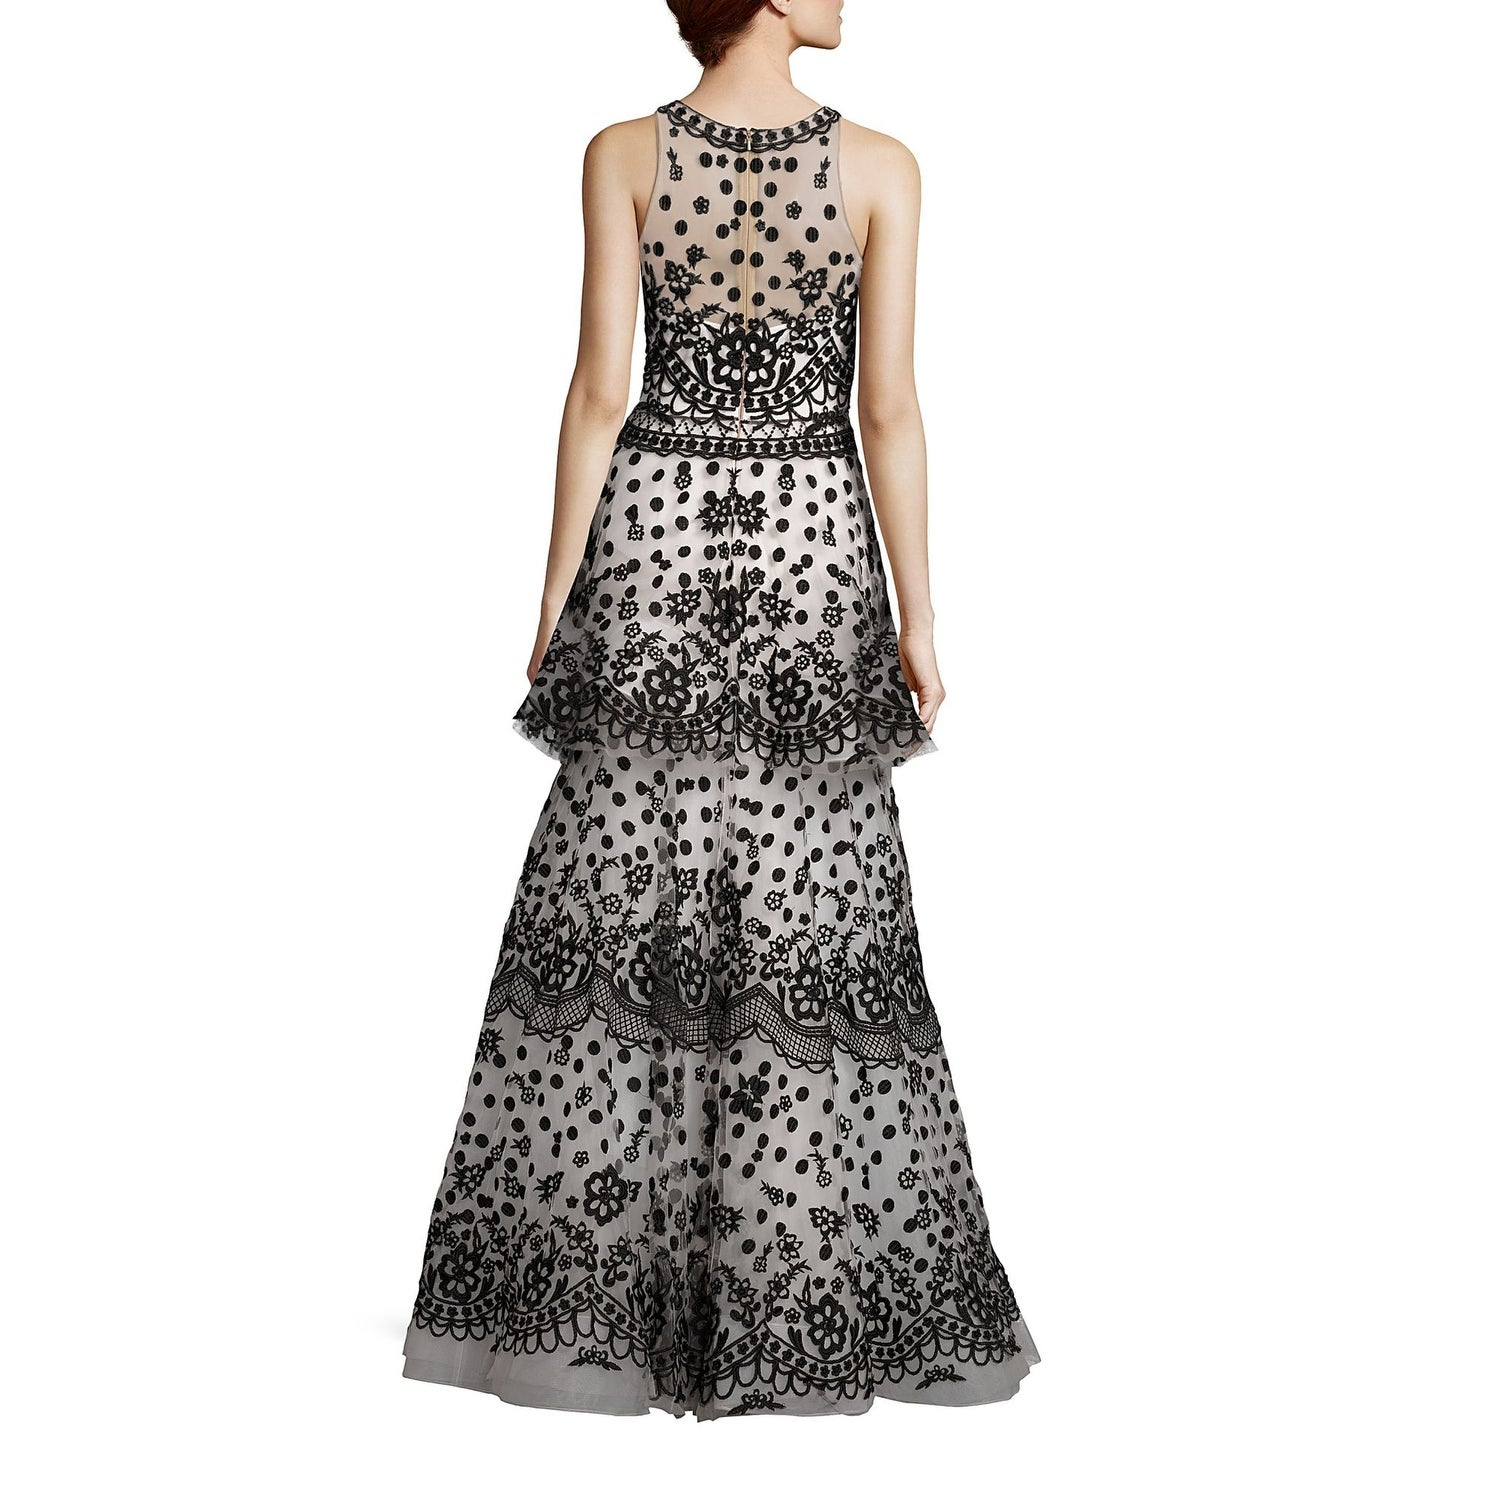 26a9420aaa22d Shop Marchesa Notte Tiered Embroidered Sleeveless Tulle Ball Evening Gown  Dress Black/White - 10 - Free Shipping Today - Overstock - 25614043